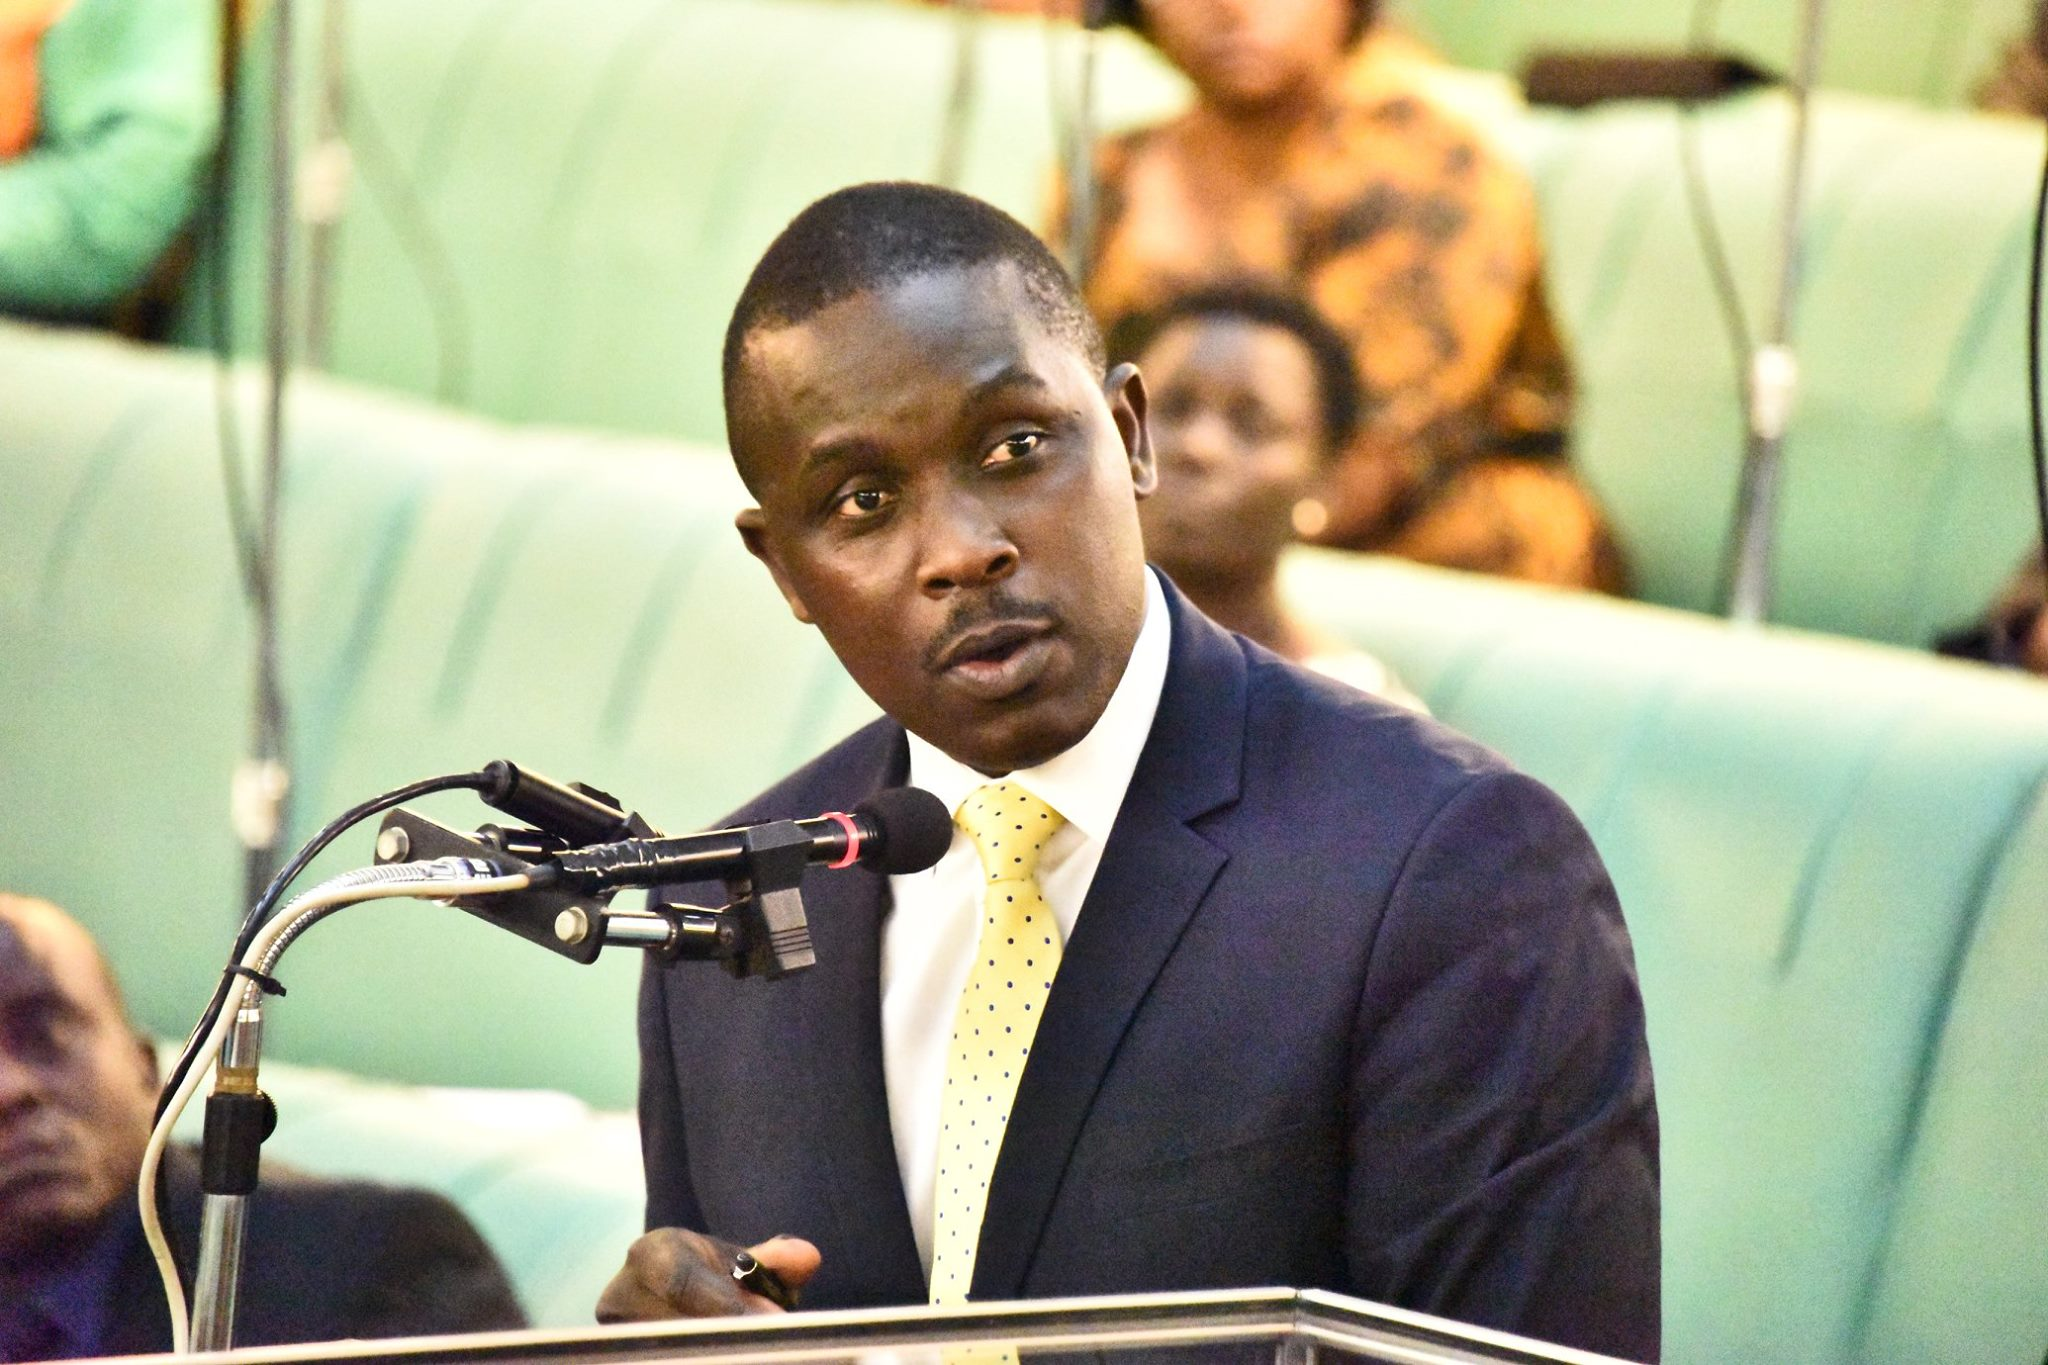 The chairperson Health Committee, Michael Bukenya revealed that data from the Indian High Commission indicates that between 2015-2016, 3200 Ugandans sought medical Visas to India. (PARLIAMENT PHOTO)